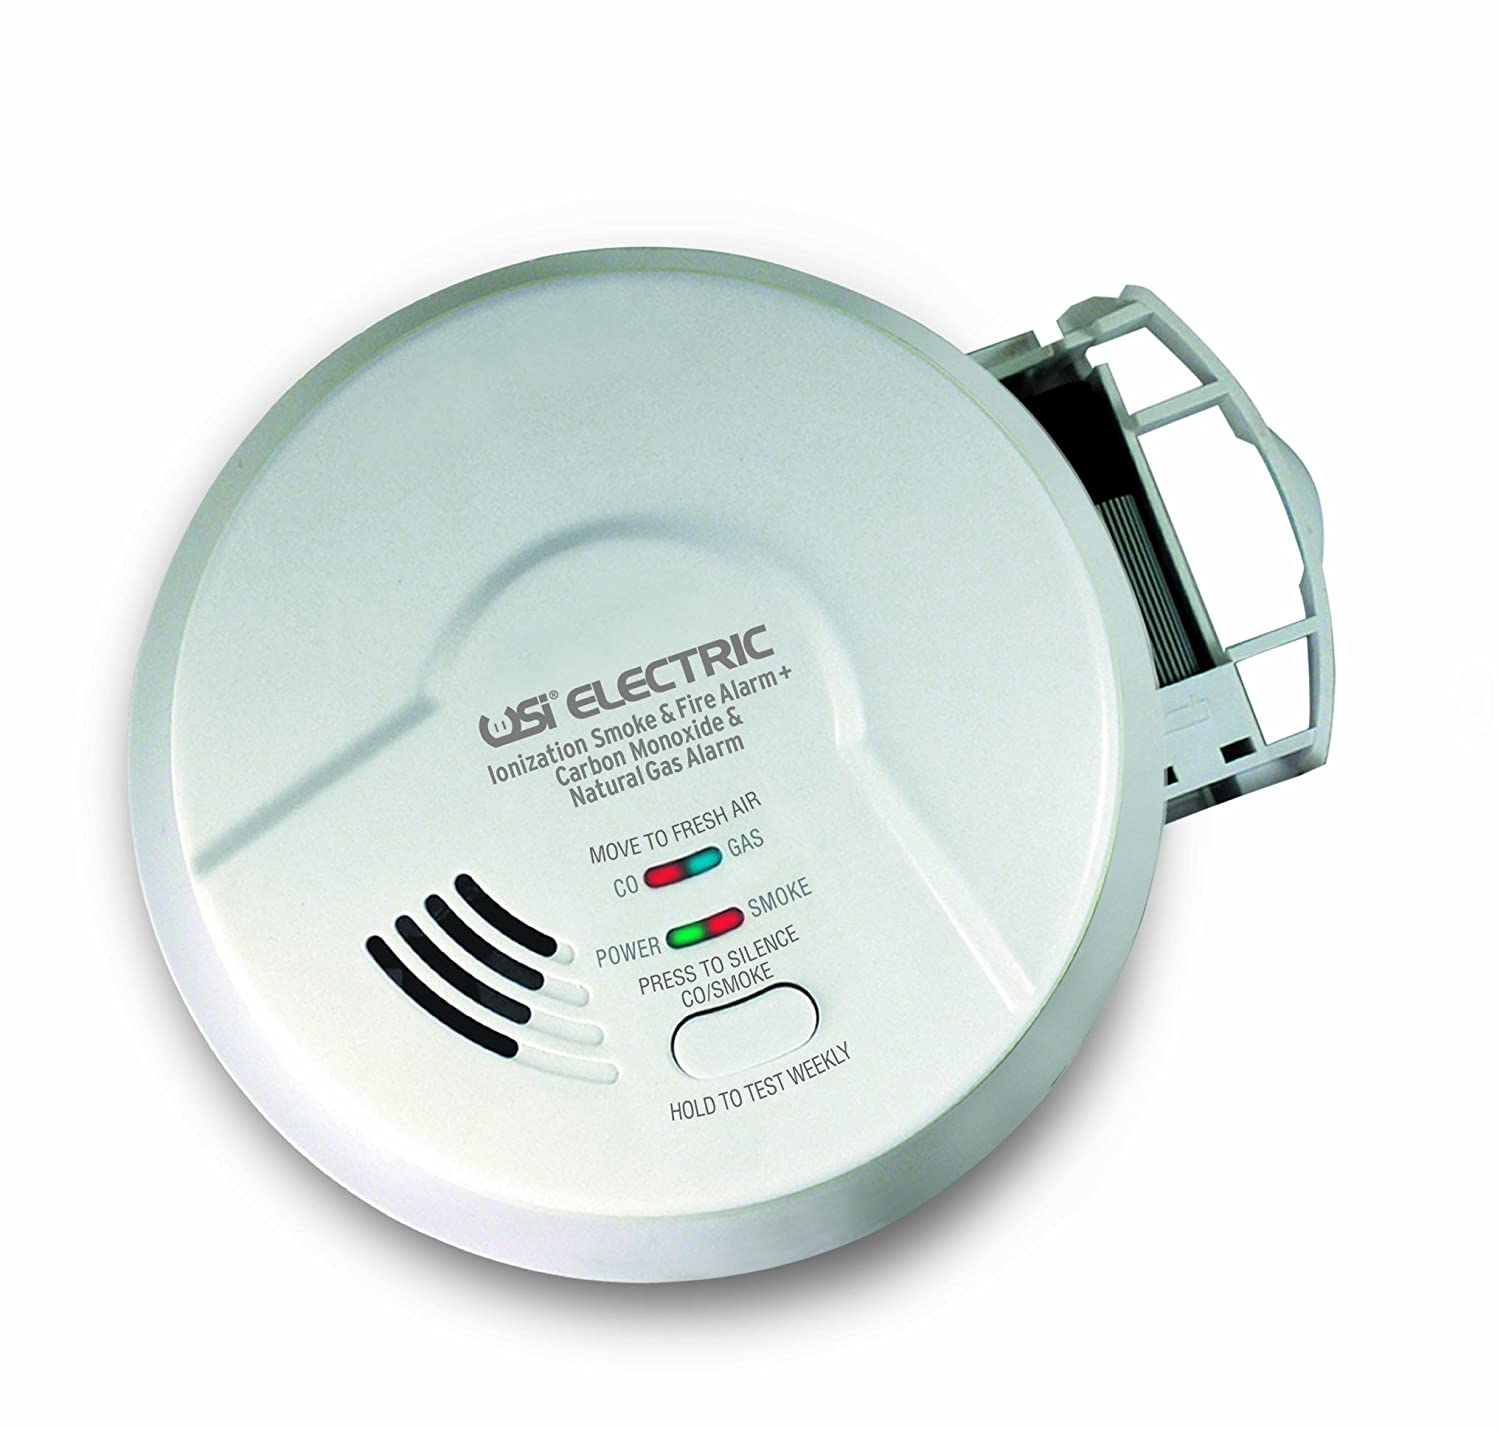 USI Electric MICN109 Hardwired 3-in-1 Smoke, Carbon Monoxide and Natural Gas Alarm